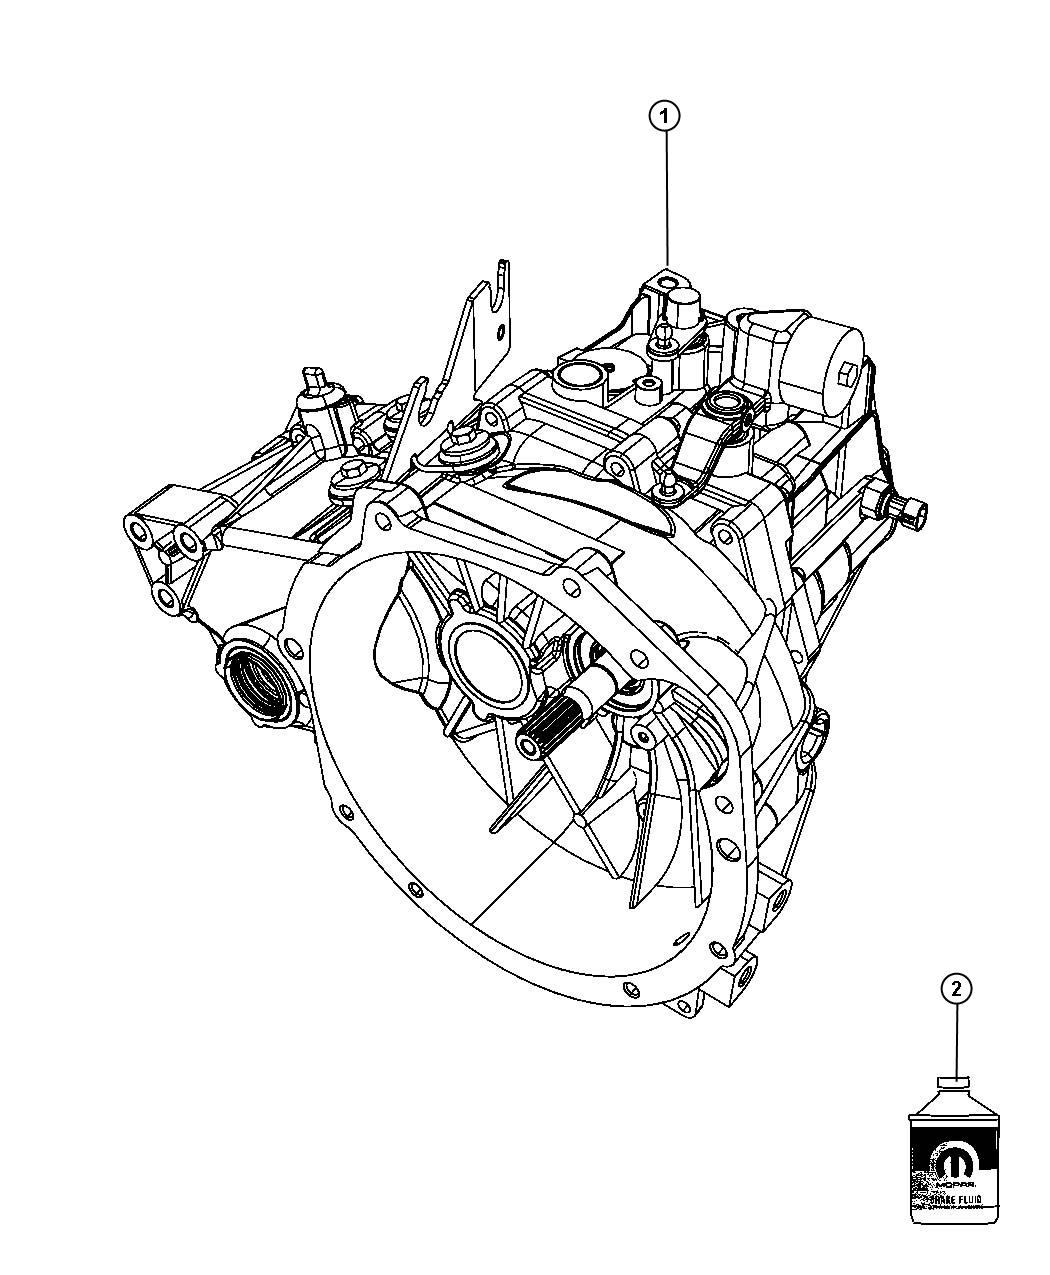 2010 Dodge Caliber Transmission / Transaxle Assembly.